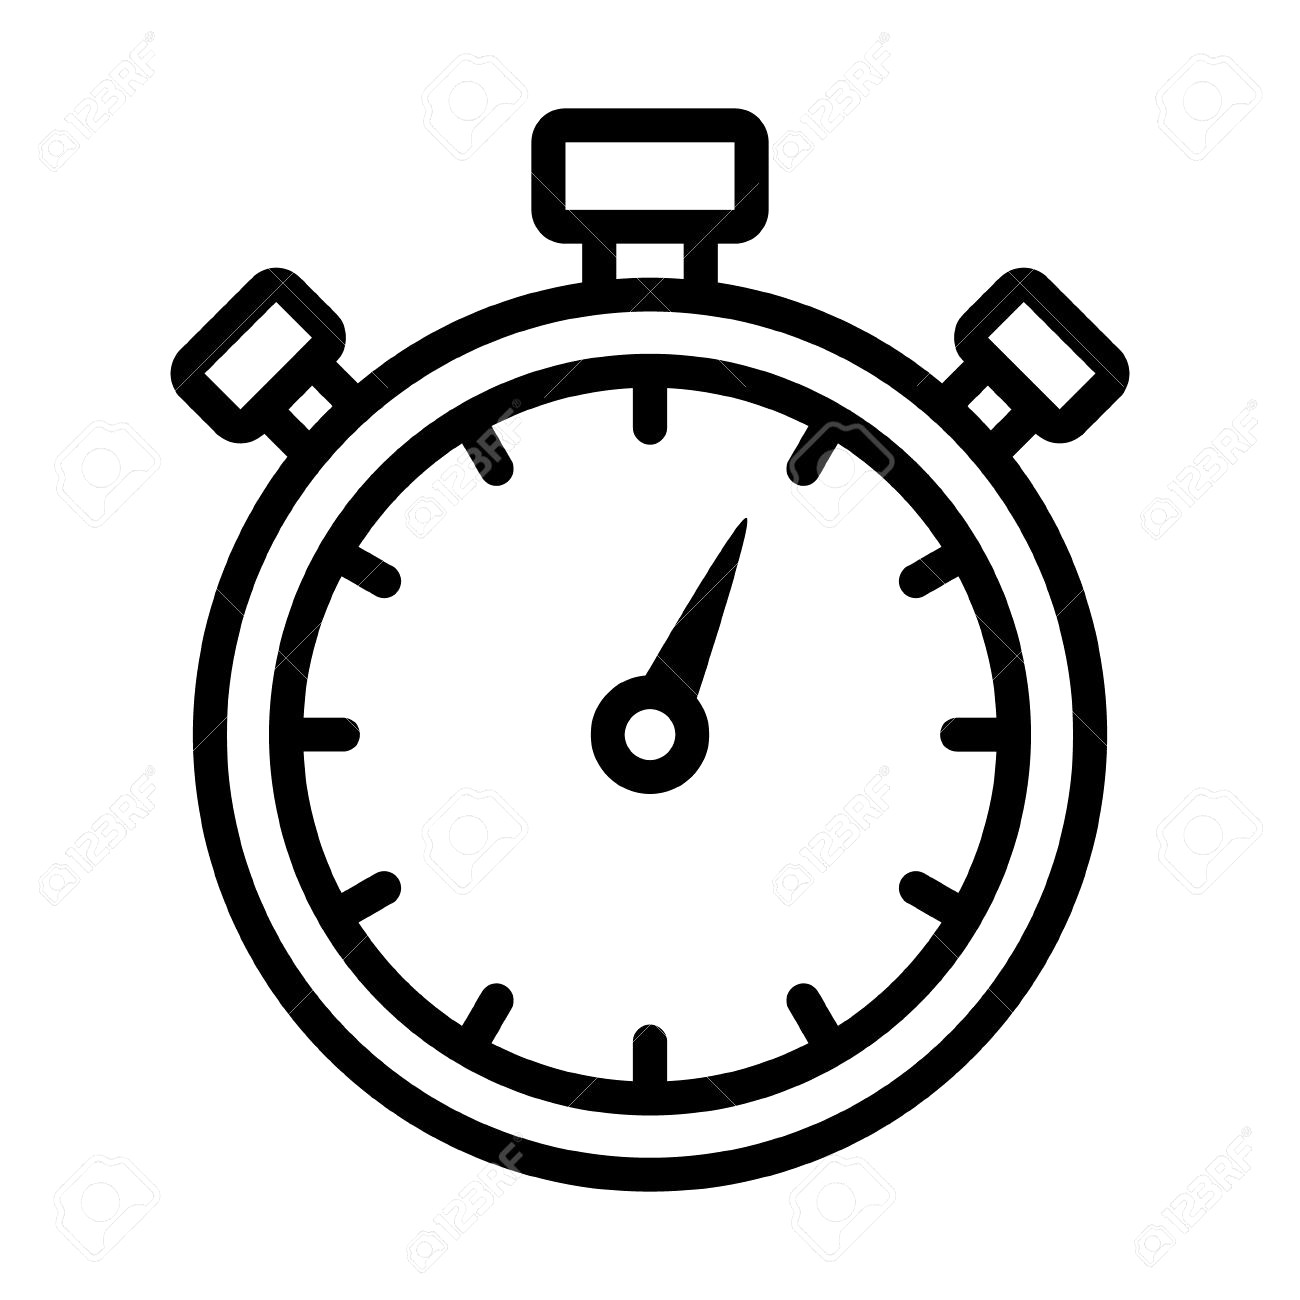 Stop watch clipart » Clipart Station.